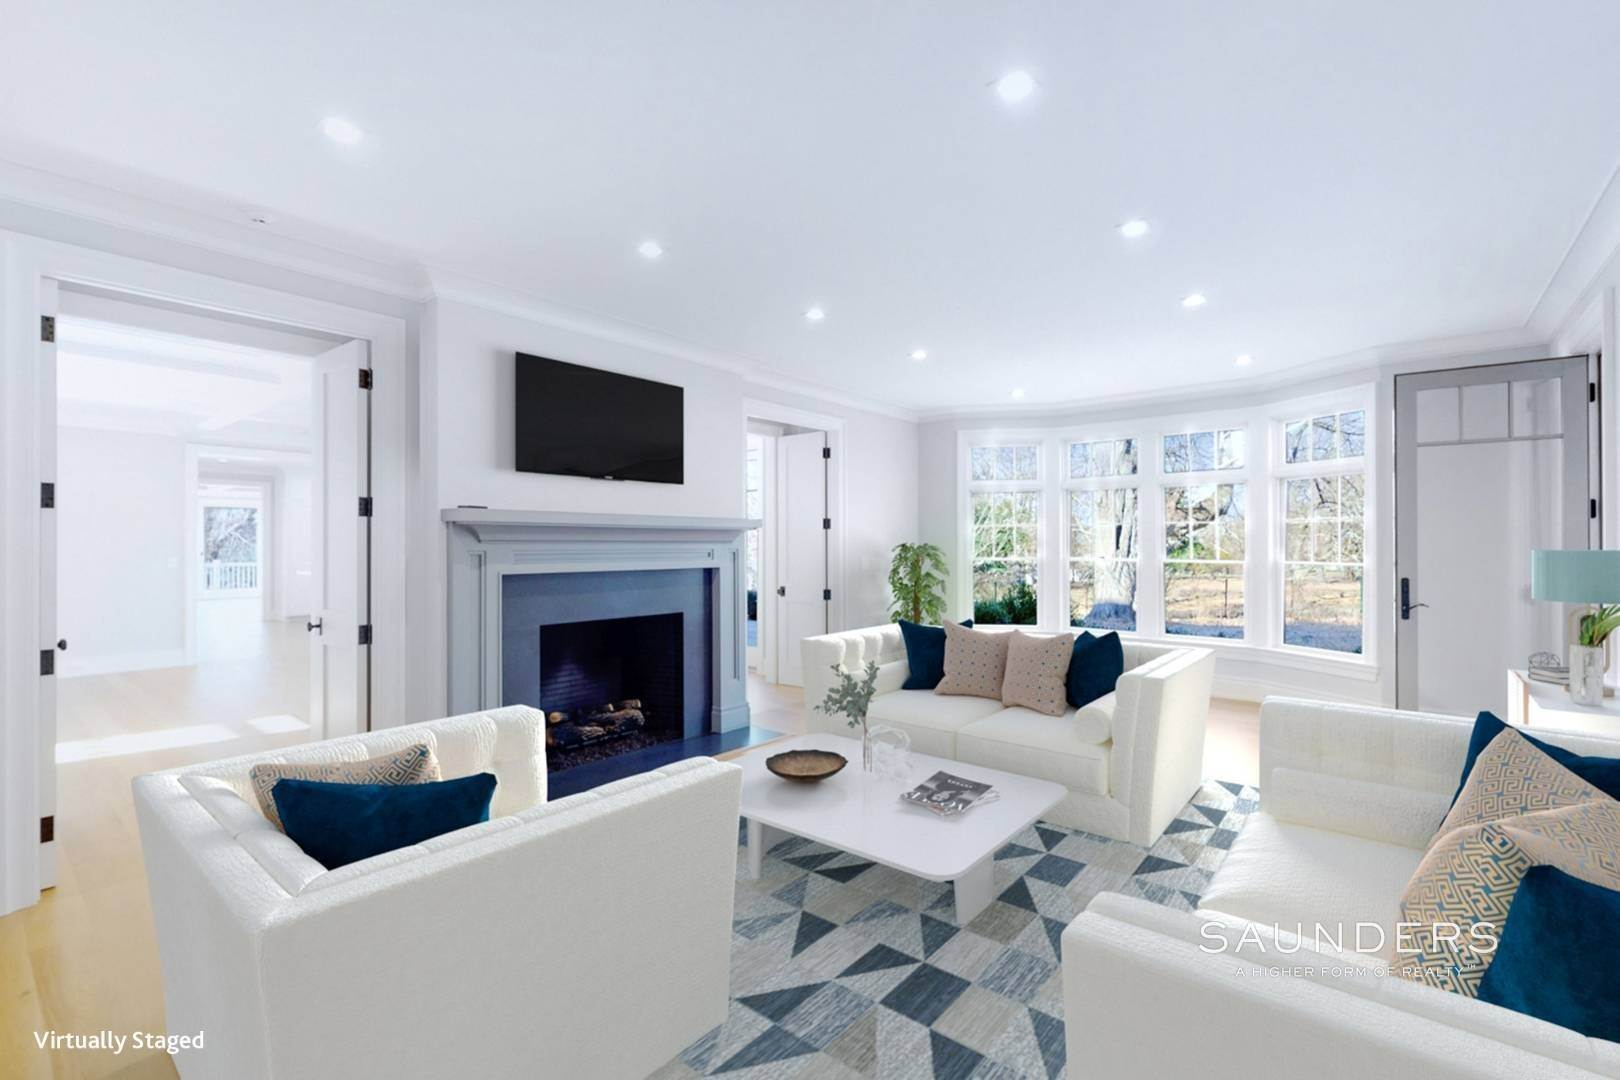 3. Single Family Homes for Sale at Luxury New Construction By The Bay In Amagansett 57 Broadview Road, Amagansett, East Hampton Town, NY 11930